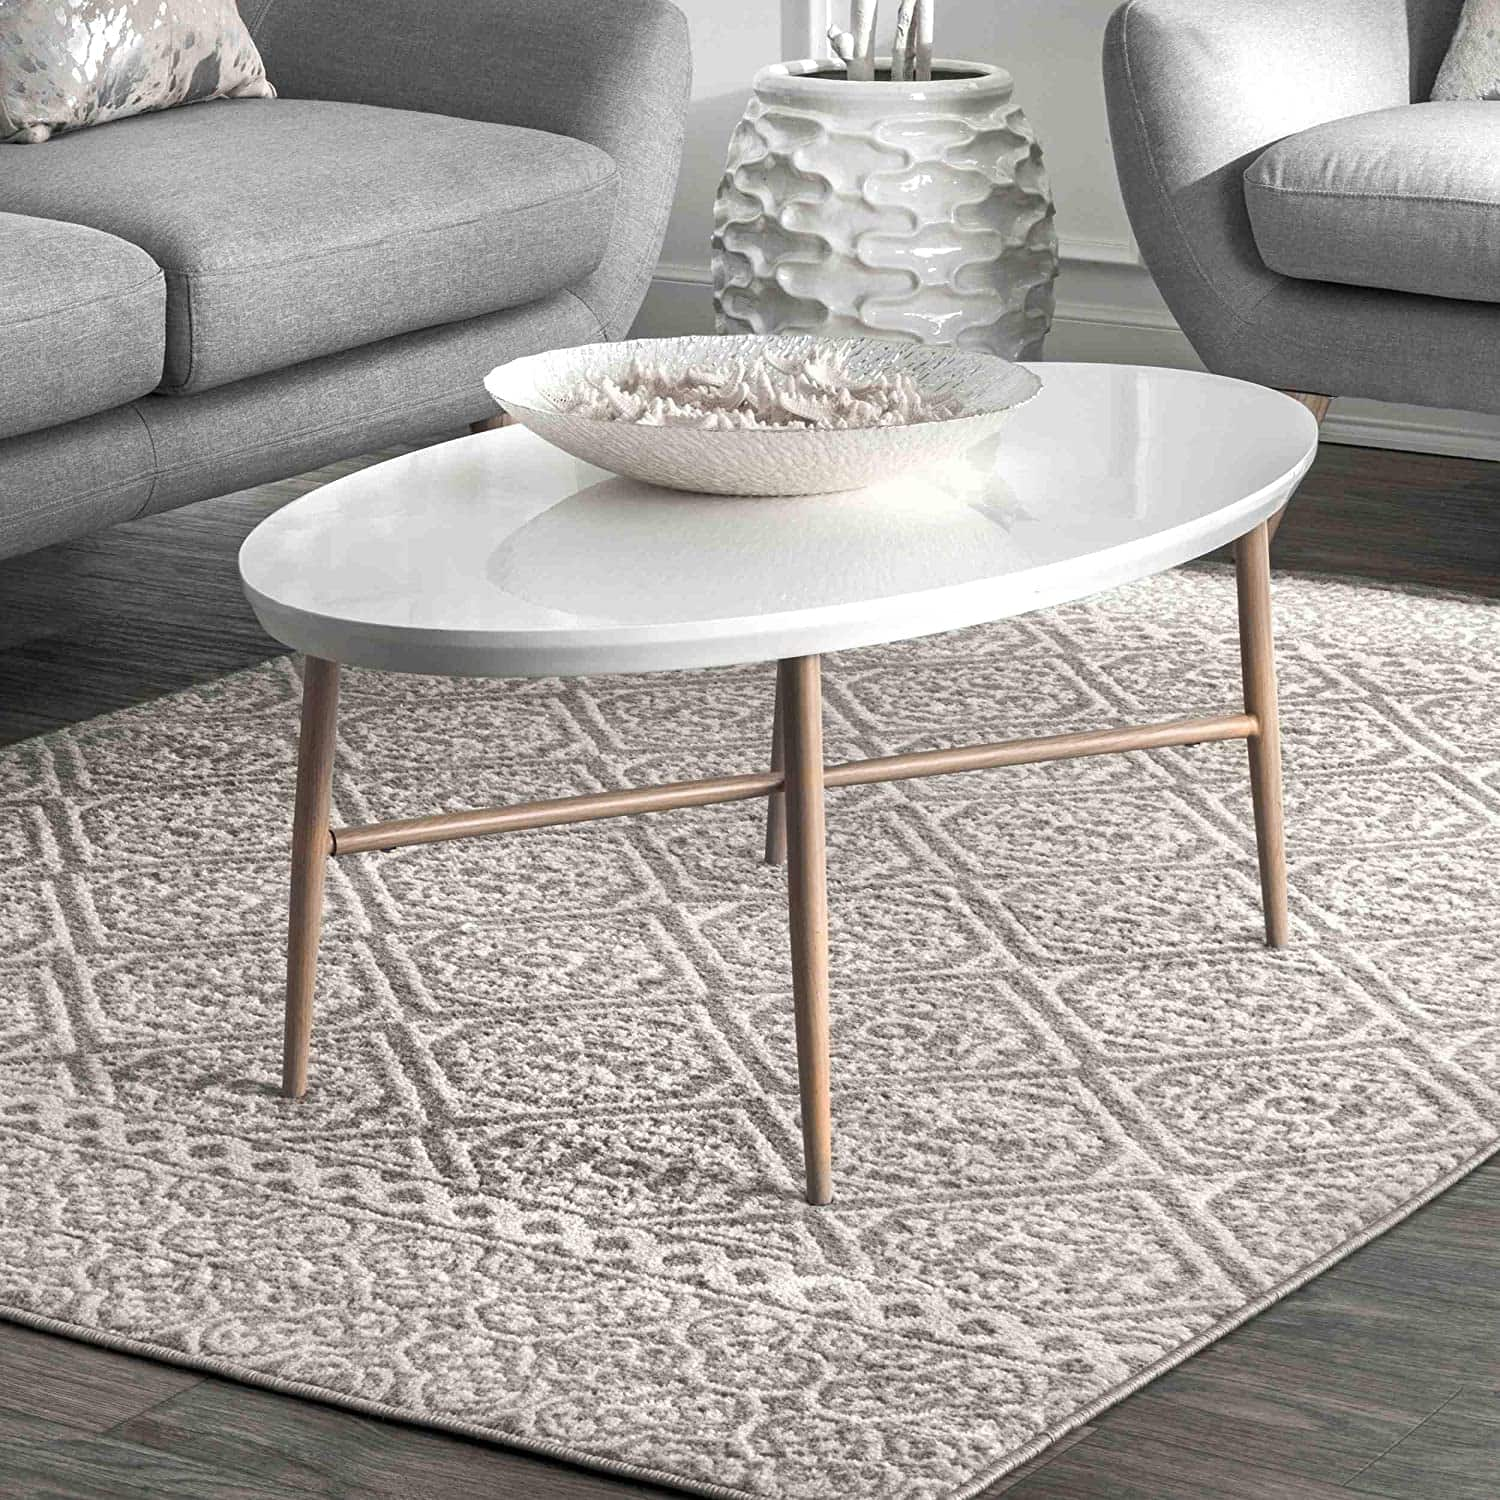 5' x 8' nuLOOM Floral Jeanette Area Rug $40.75 + Free Shipping